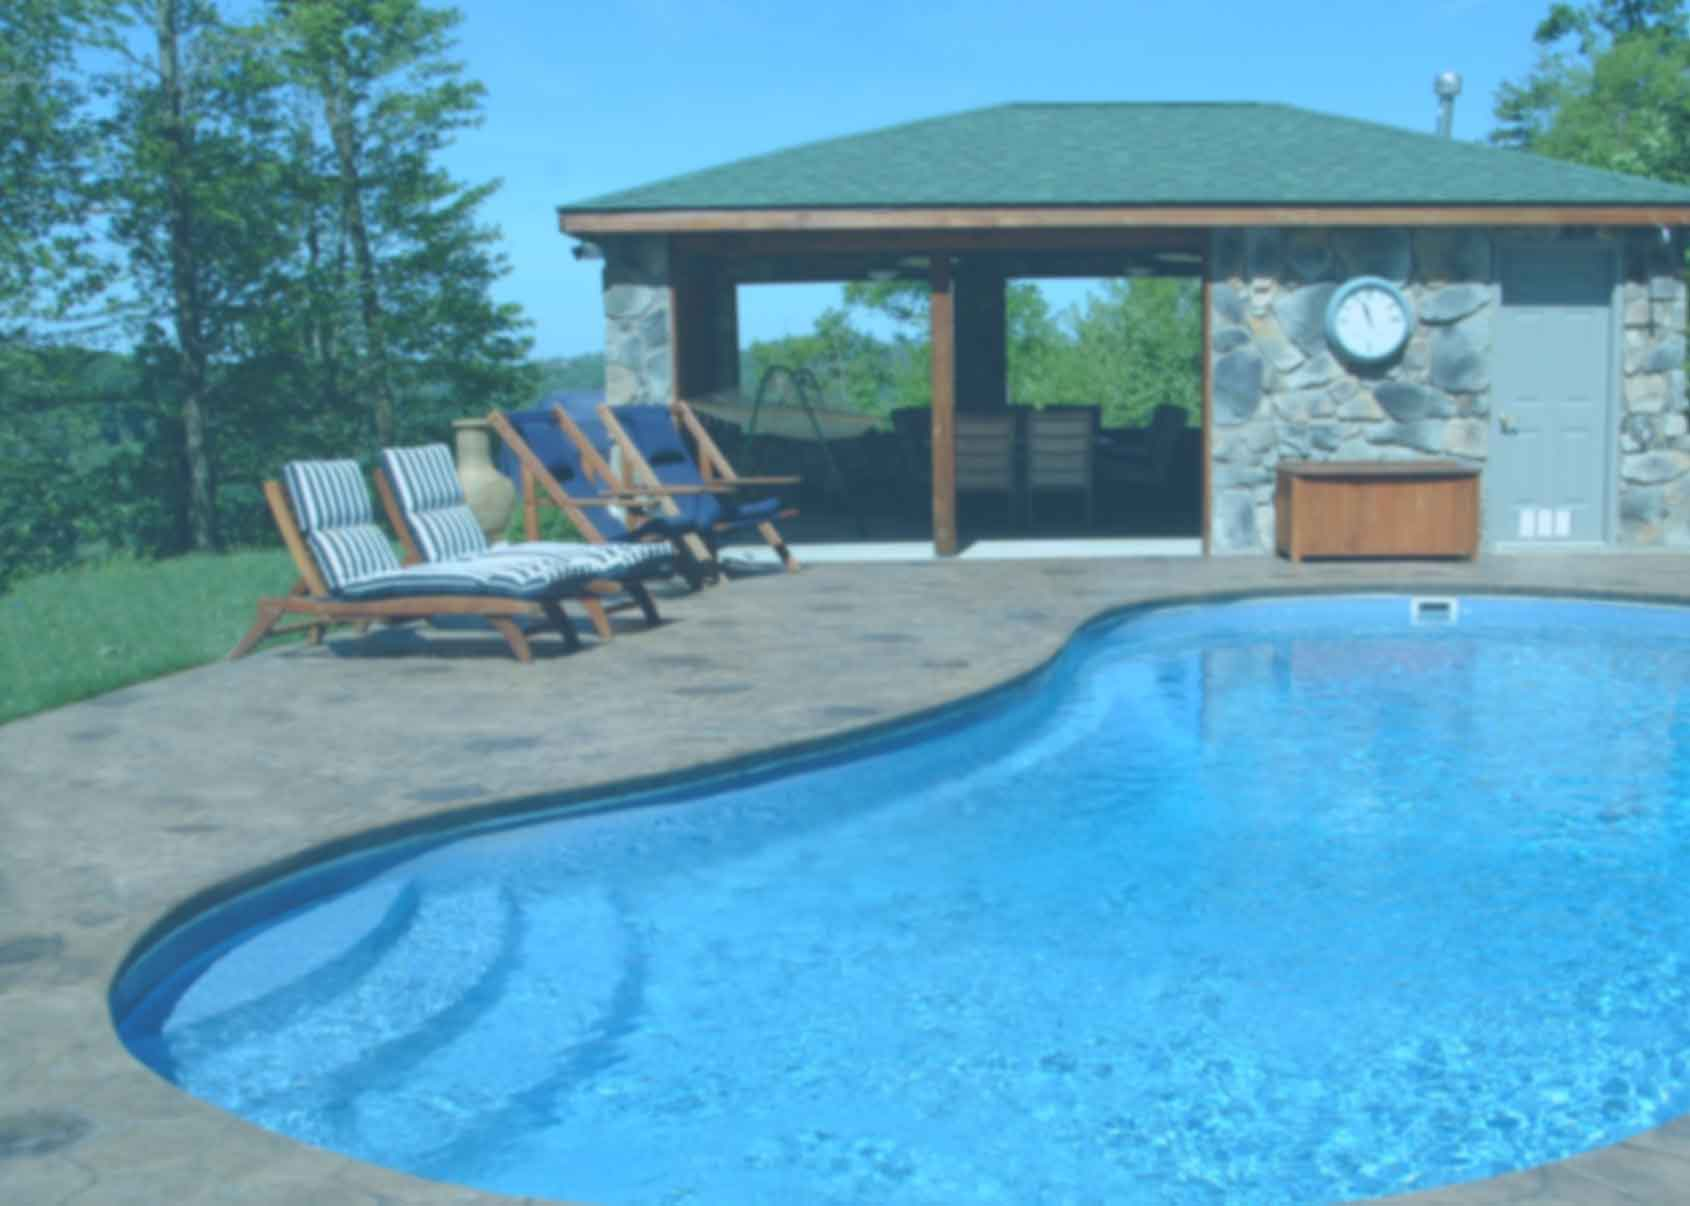 Fiberglass Inground Swimming Pools For West Virginia From